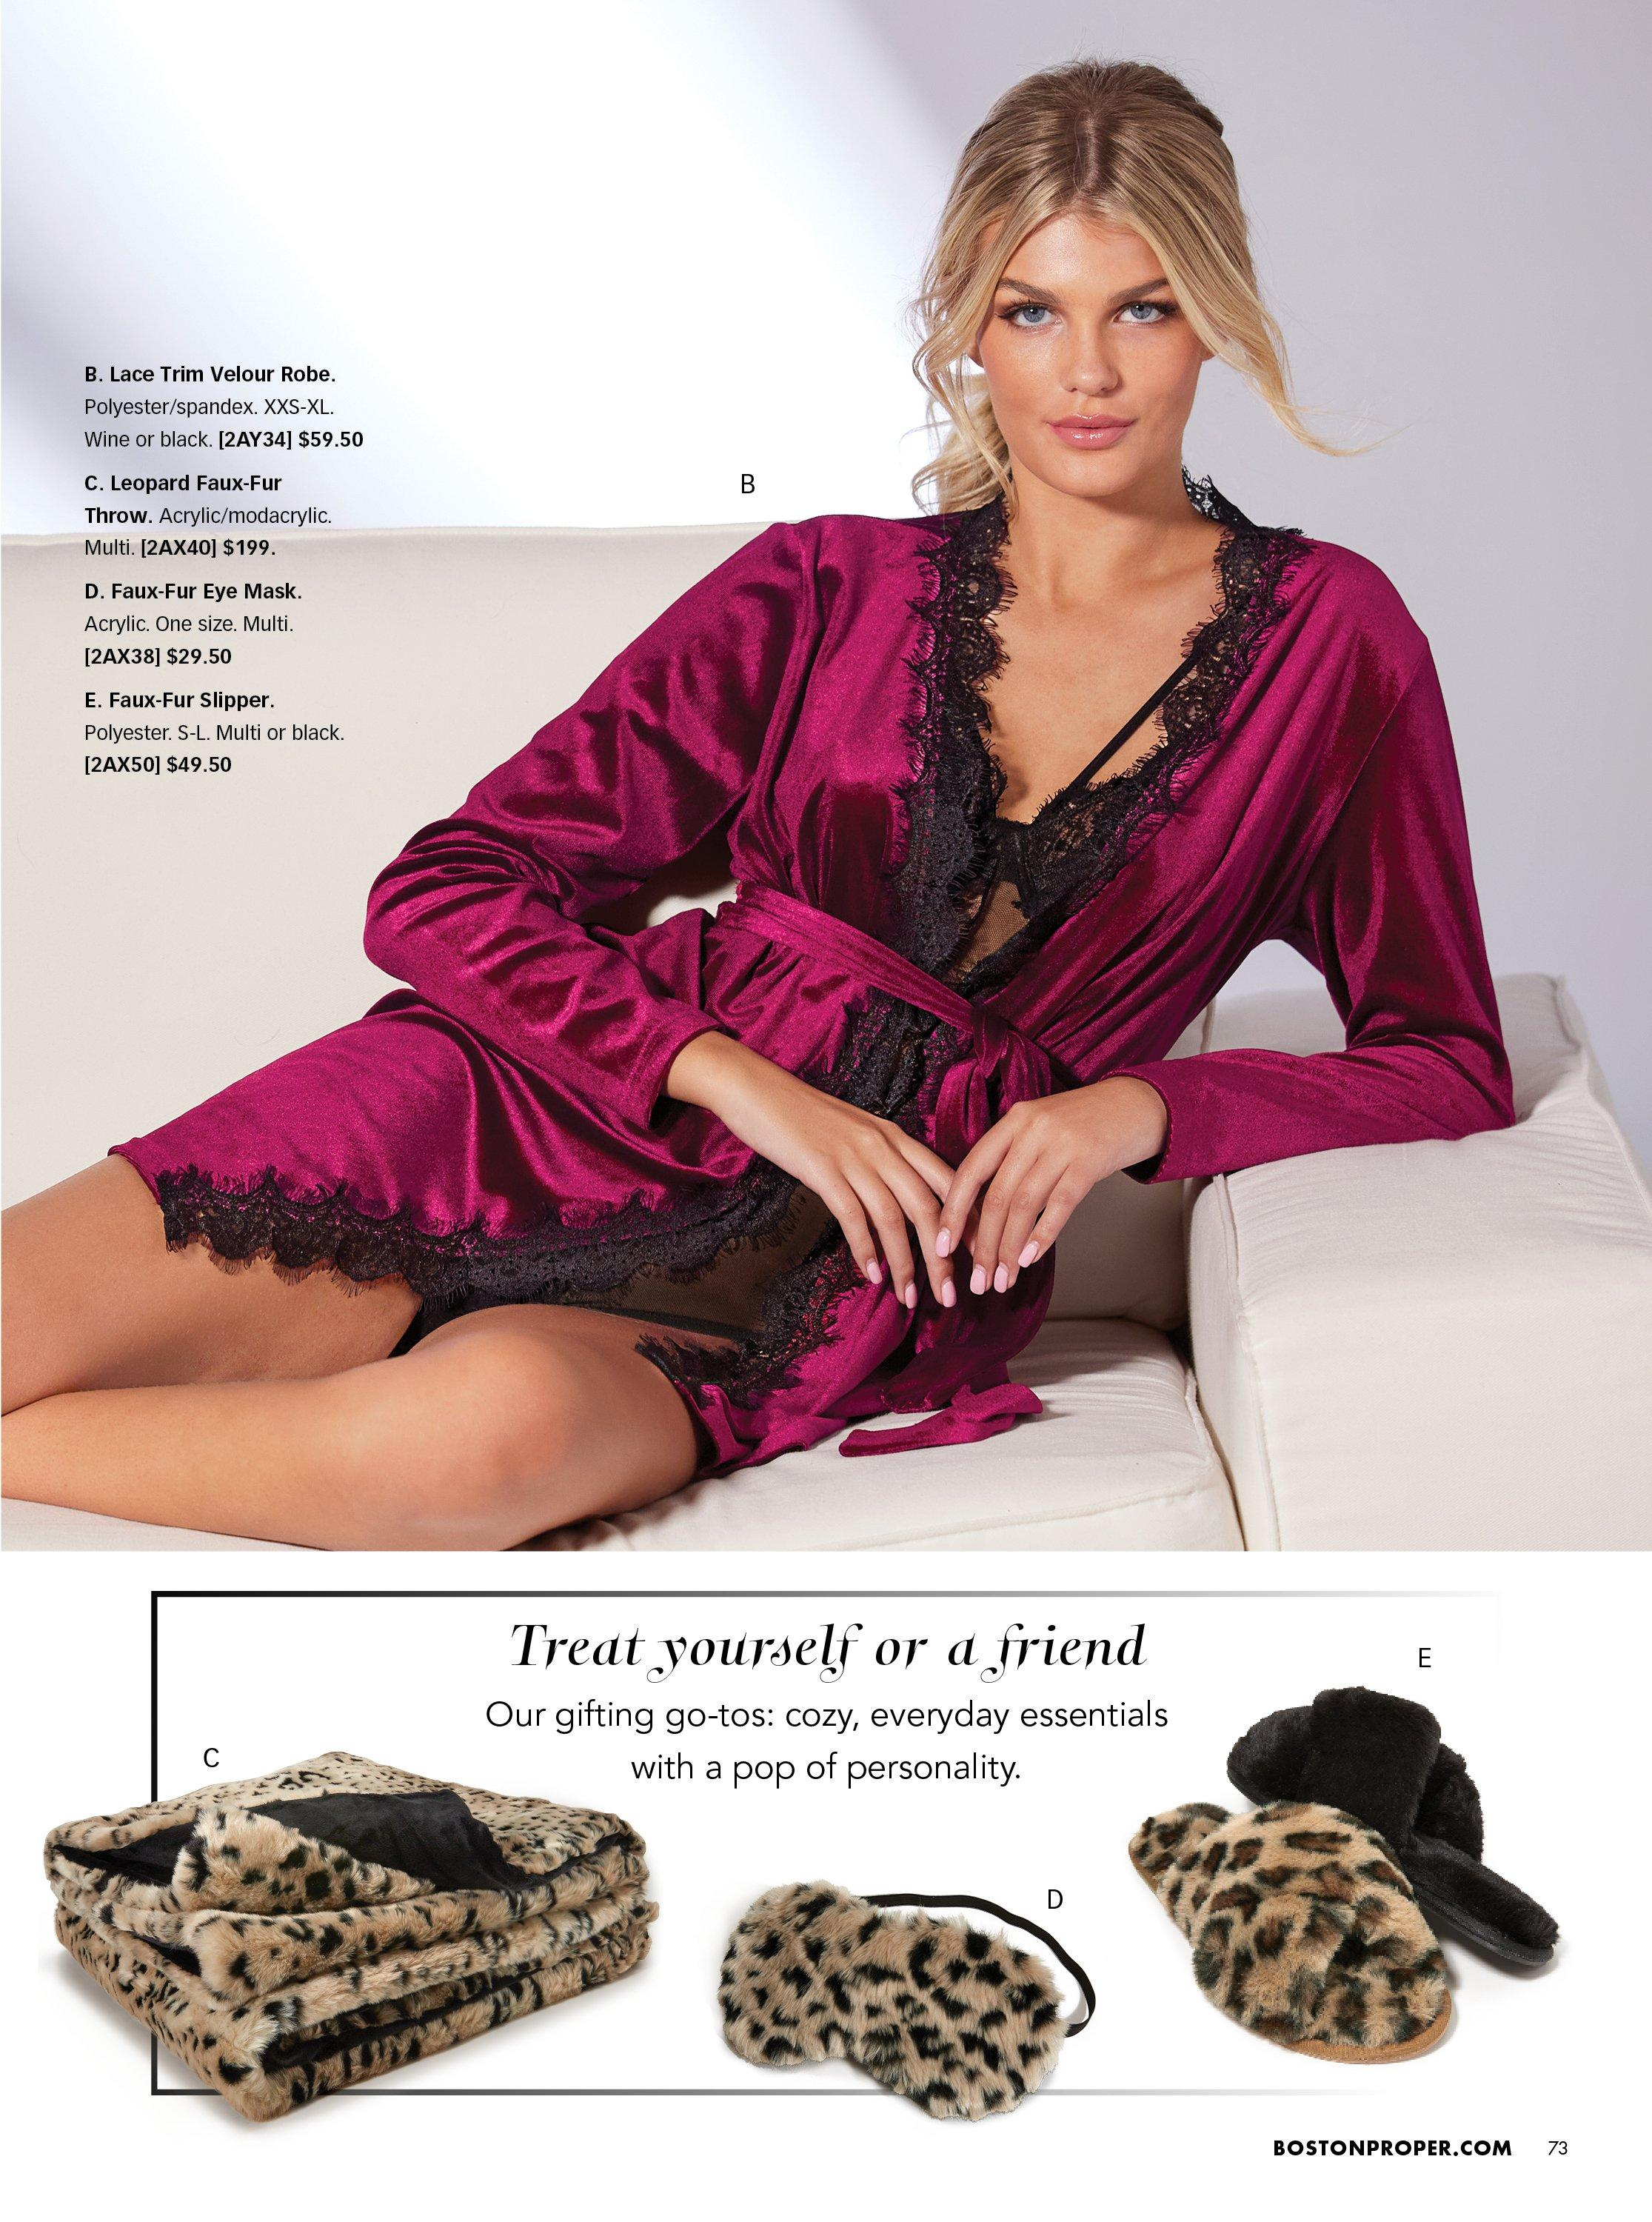 model wearing a purple velour robe and black strappy and lace bodysuit. bottom panel shows leopard printed throw, eye mask, and slippers.